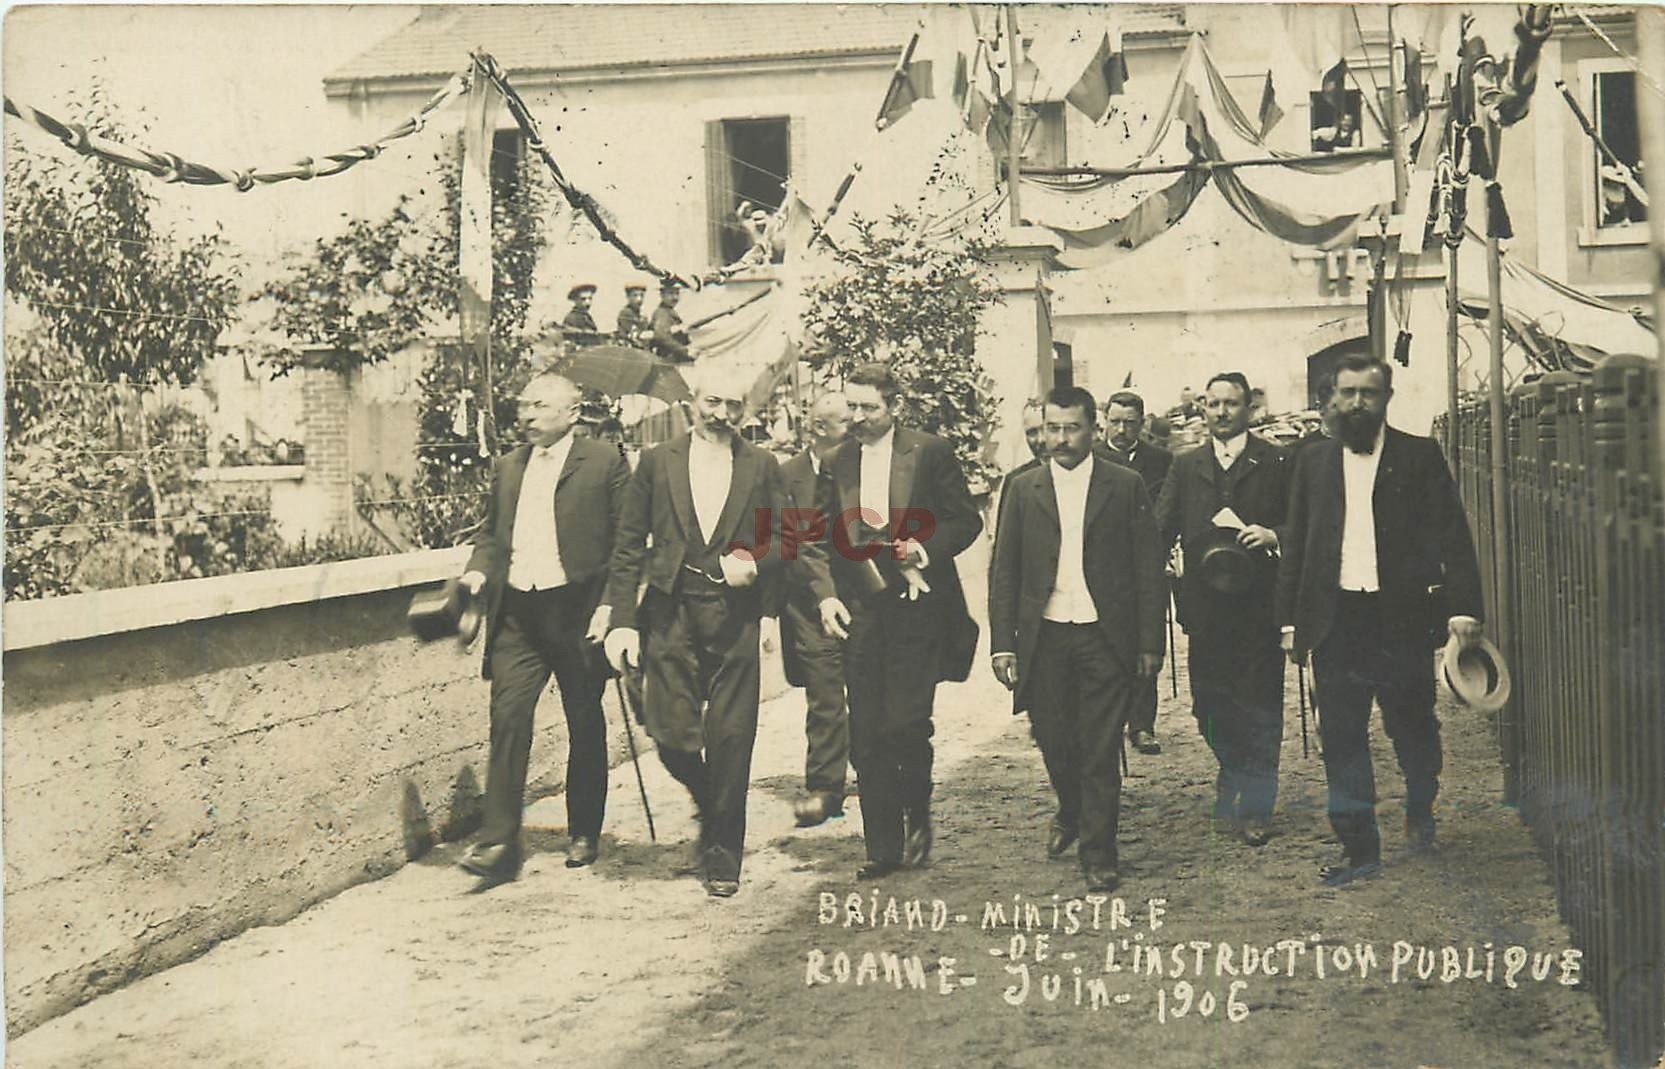 WW 42 ROANNE. Briand Ministre de l'instruction publique 1906. Photo carte postale de Chambosse